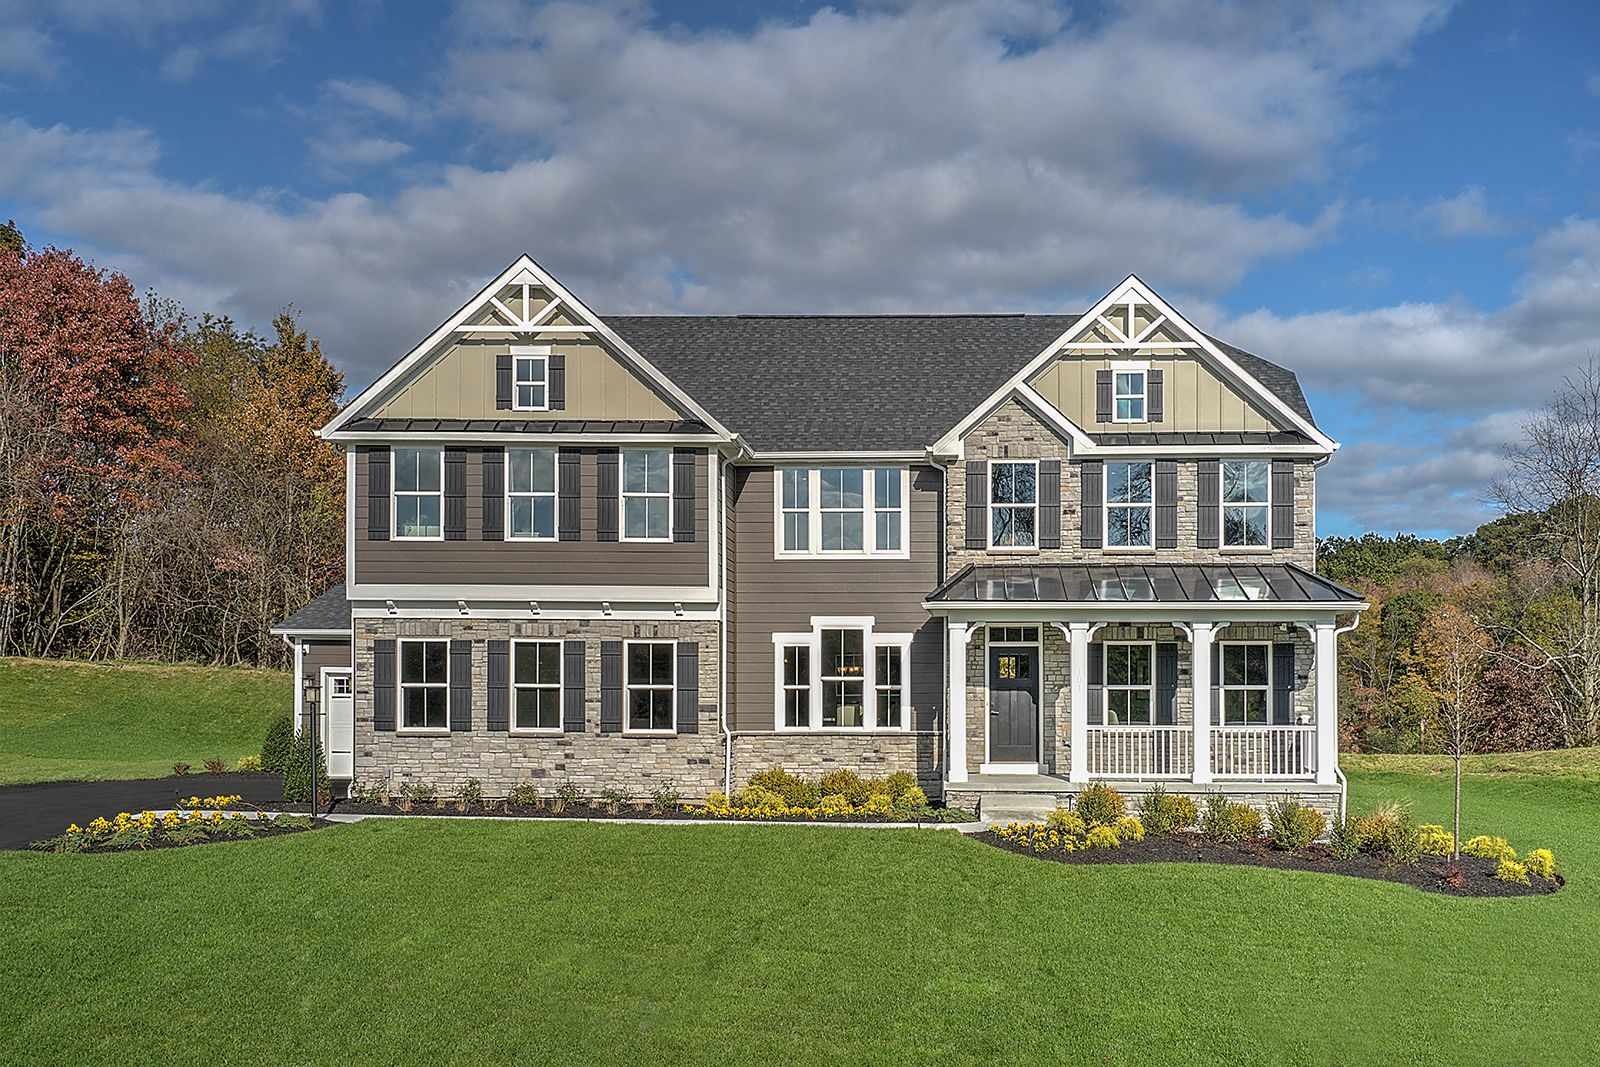 WELCOME TO ESTATES OF LONDON GROVE:The only new community offering up to ½-acre wooded homesites, up to 3-car garages & private back yards in Avon Grove schools.Click hereto schedule your visit today.